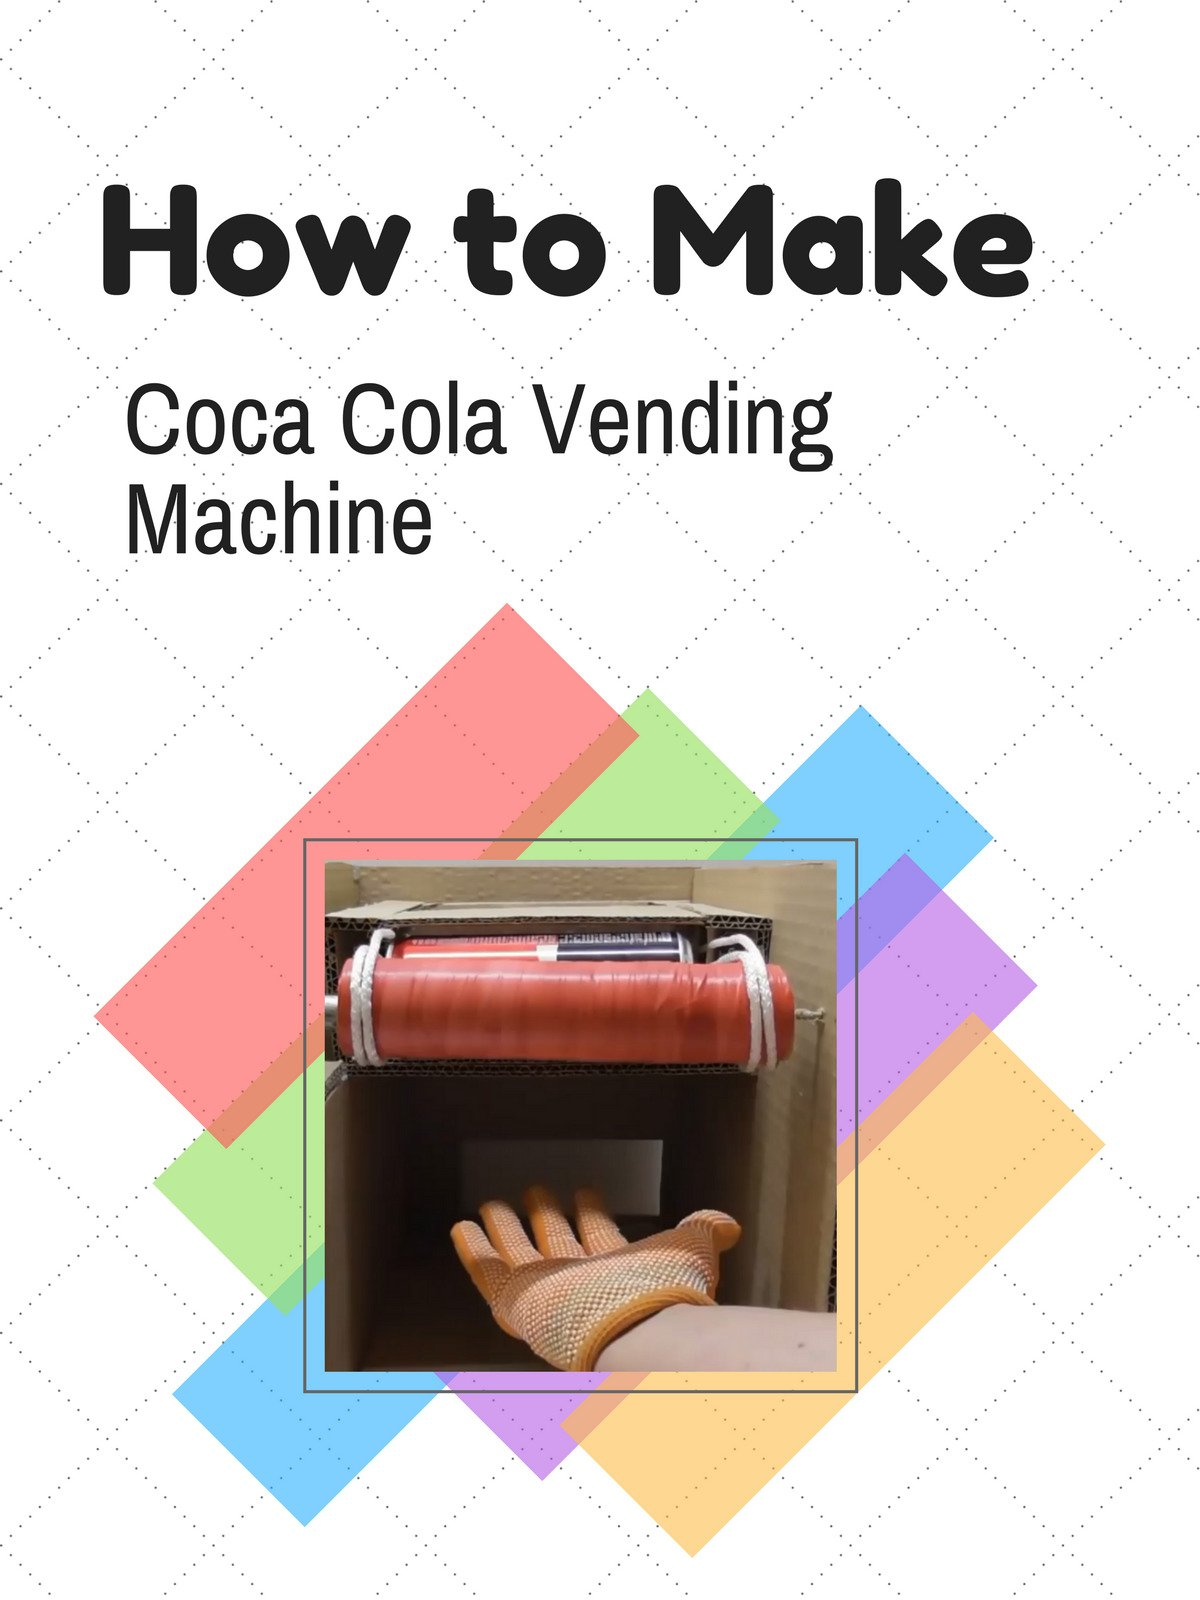 How to Make Coca Cola Vending Machine